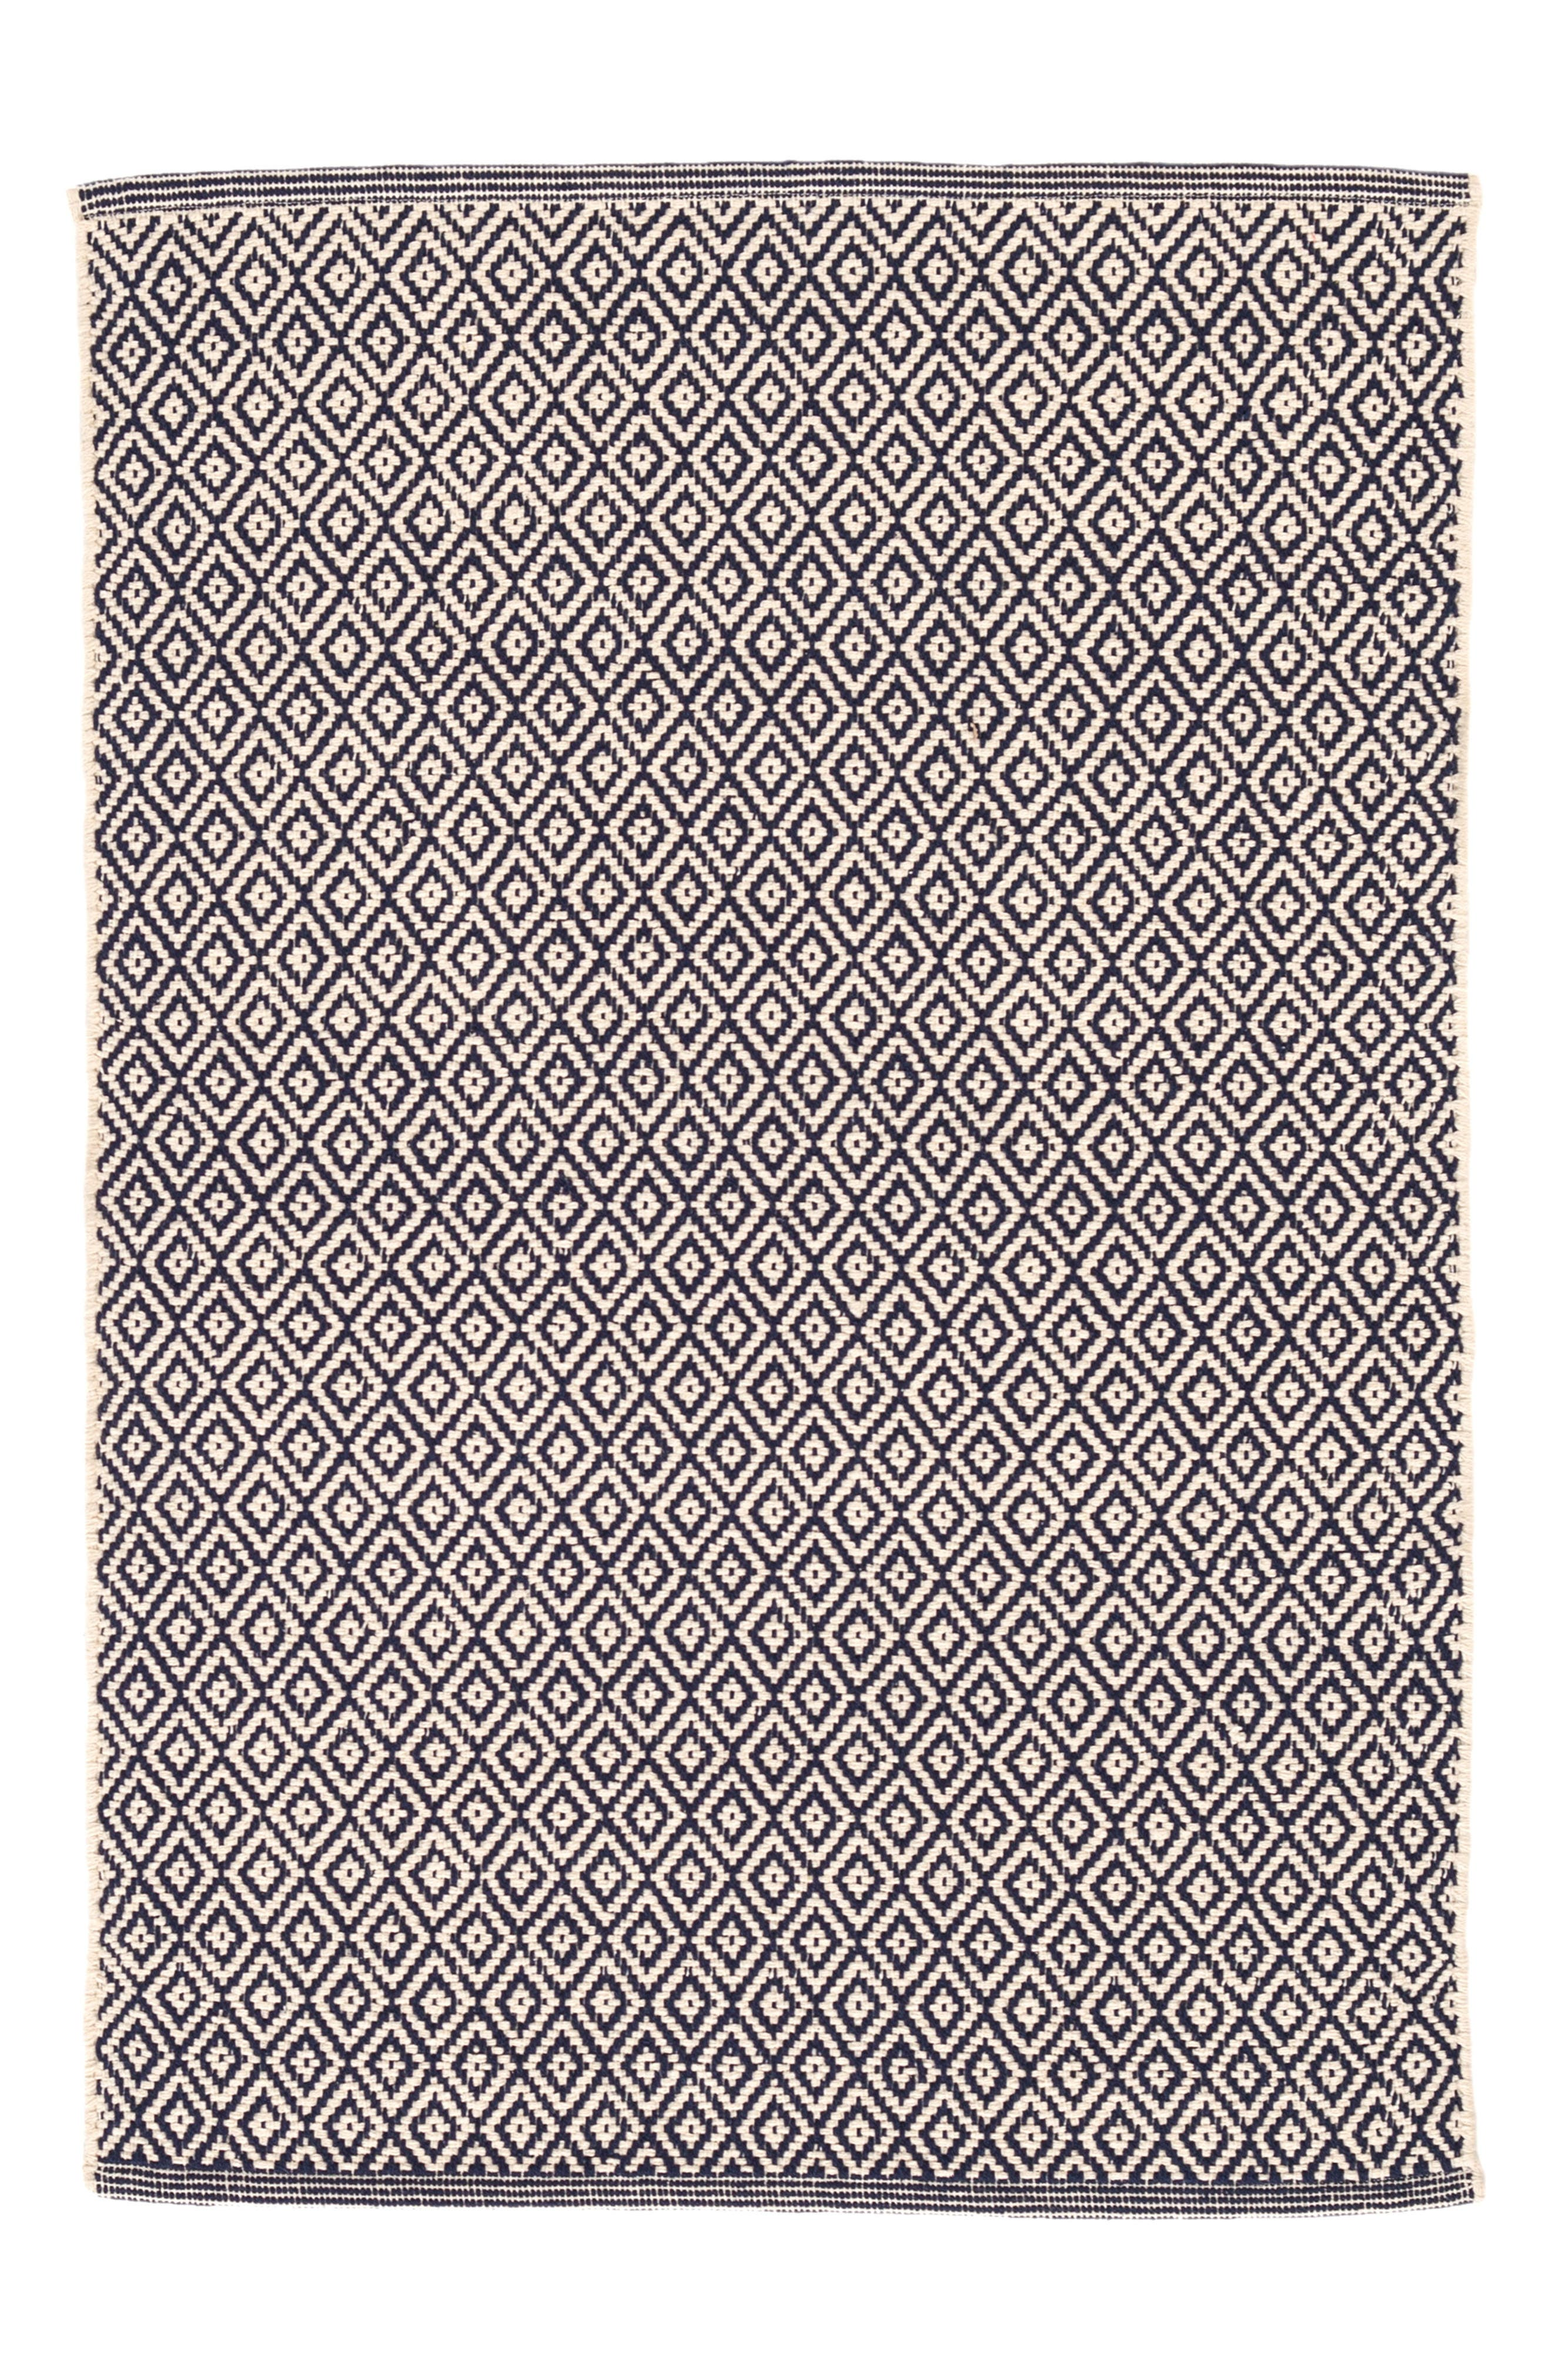 Lattice Handwoven Cotton Rug,                             Main thumbnail 1, color,                             BLUE